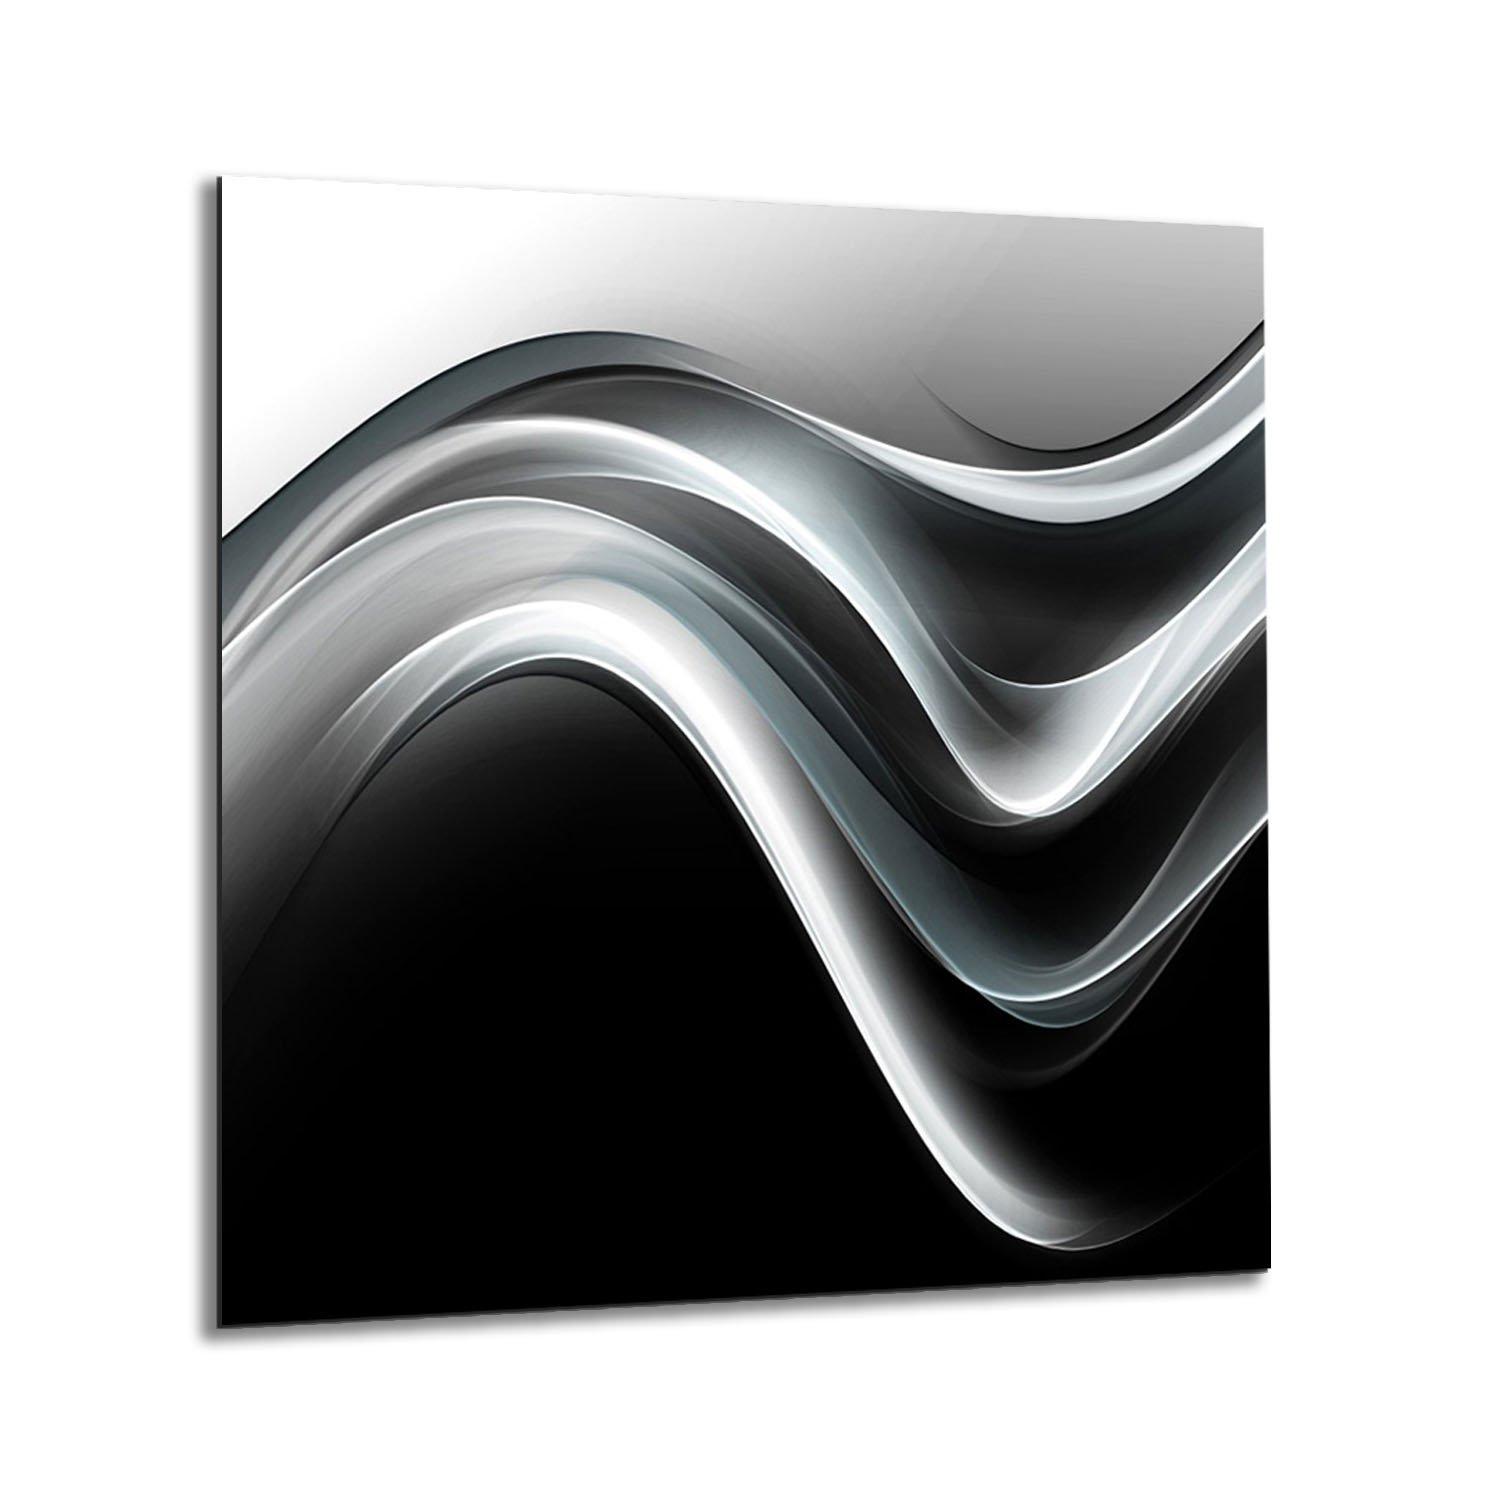 Kitchen Glass Splashback Heat Resistant Toughened Glass 60x65 cm graphic no. 1735 Glass Awesome